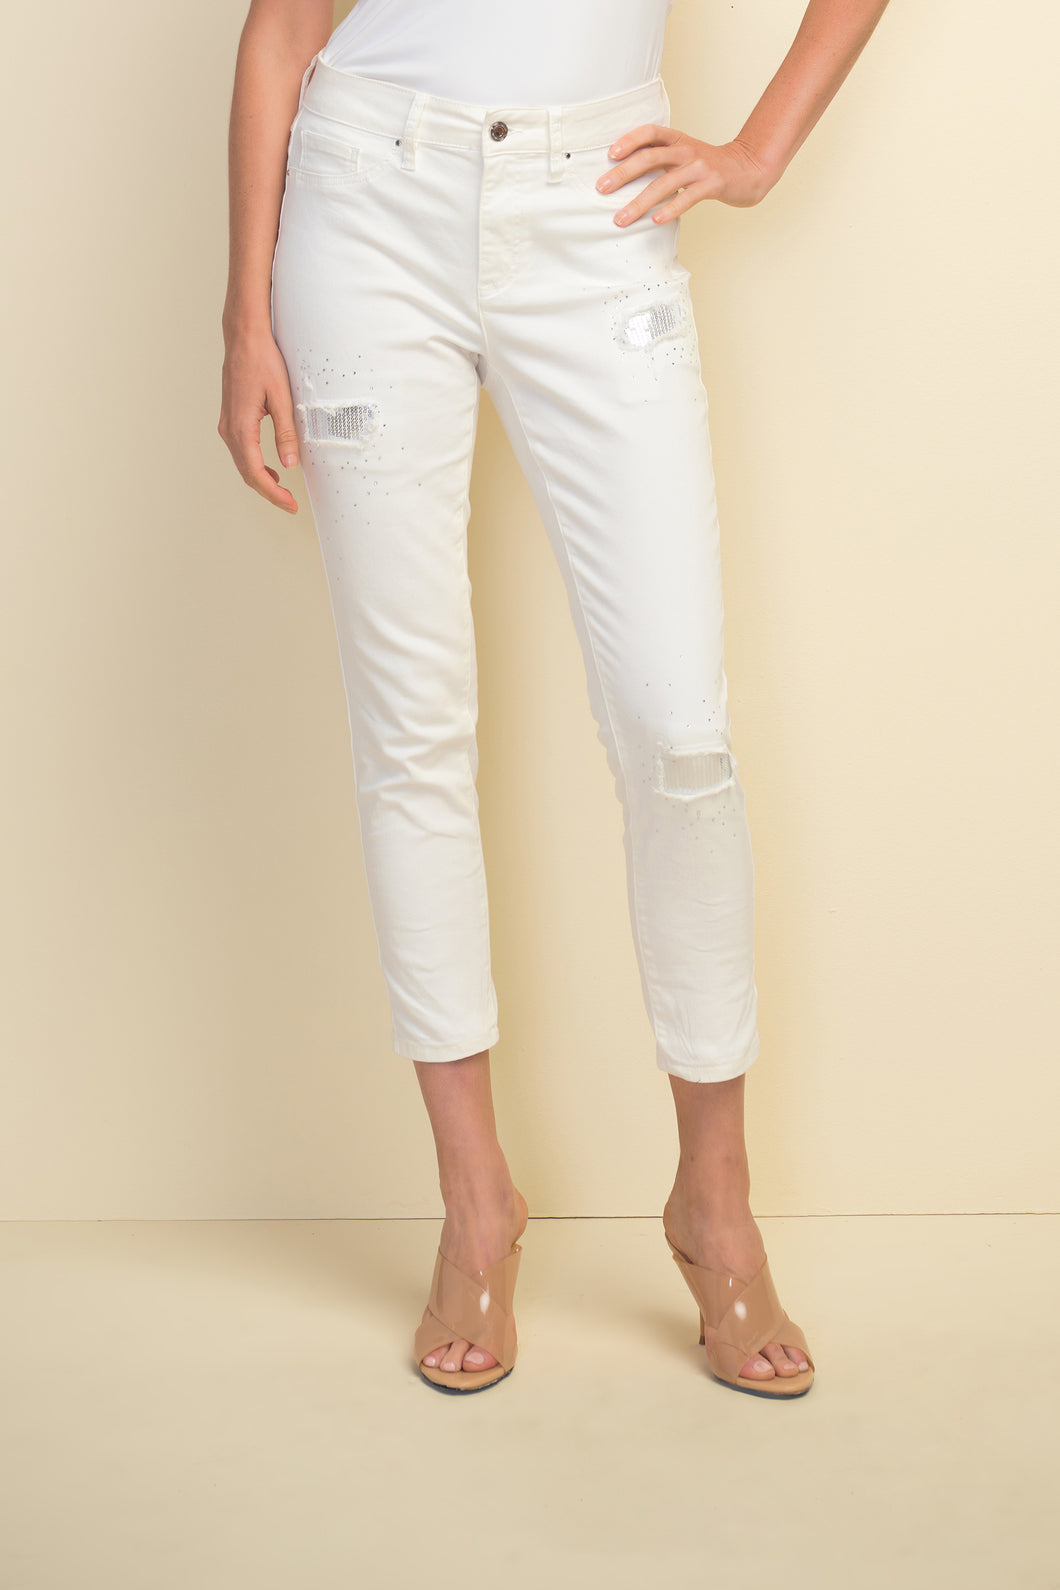 White Sequined Patchwork Jeans - Pooja Boutique